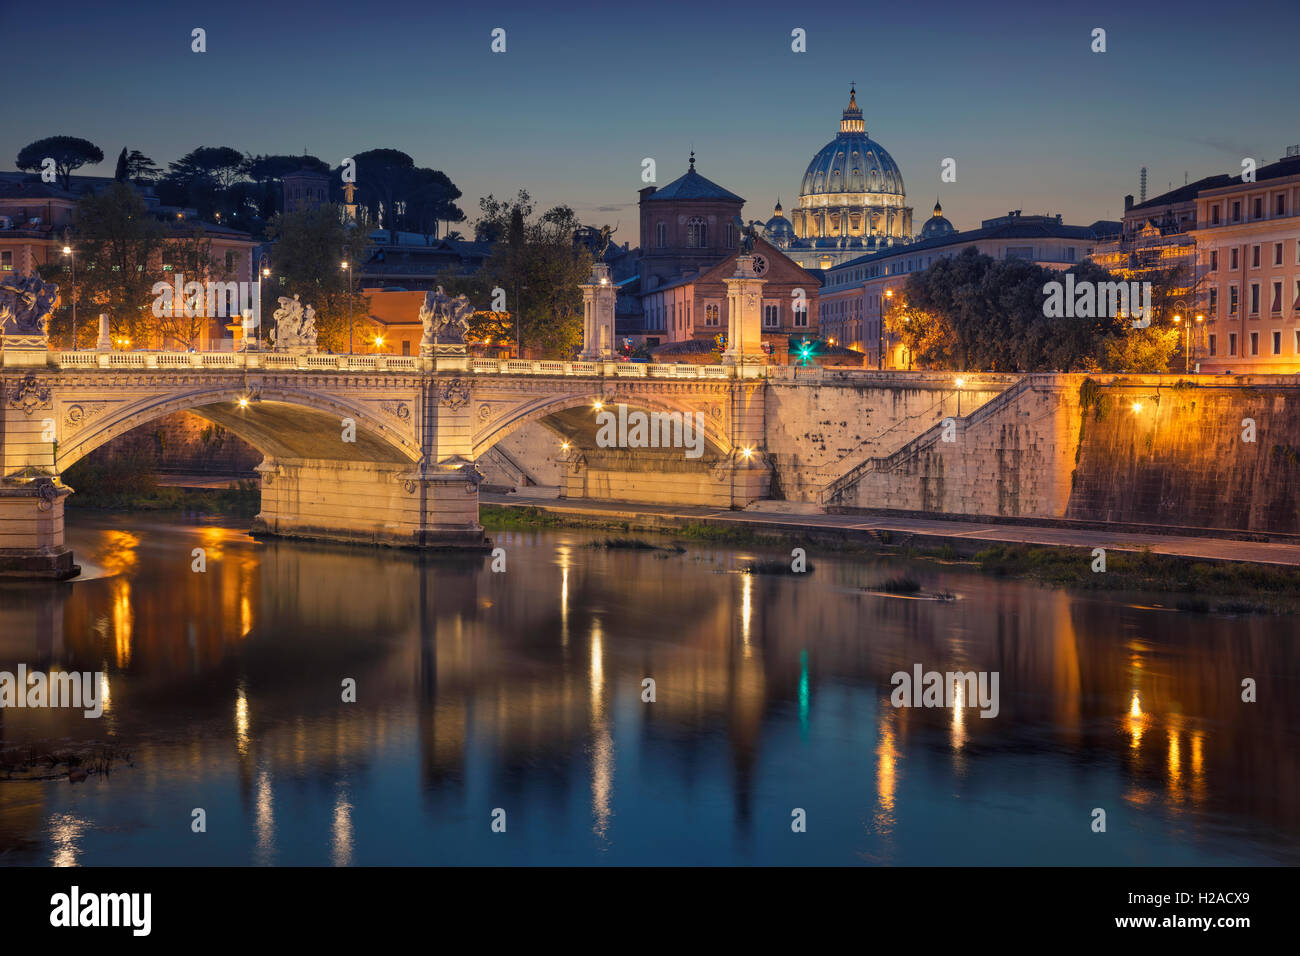 Rome. View of Vittorio Emanuele Bridge and the St. Peter's cathedral in Rome, Italy at night. - Stock Image